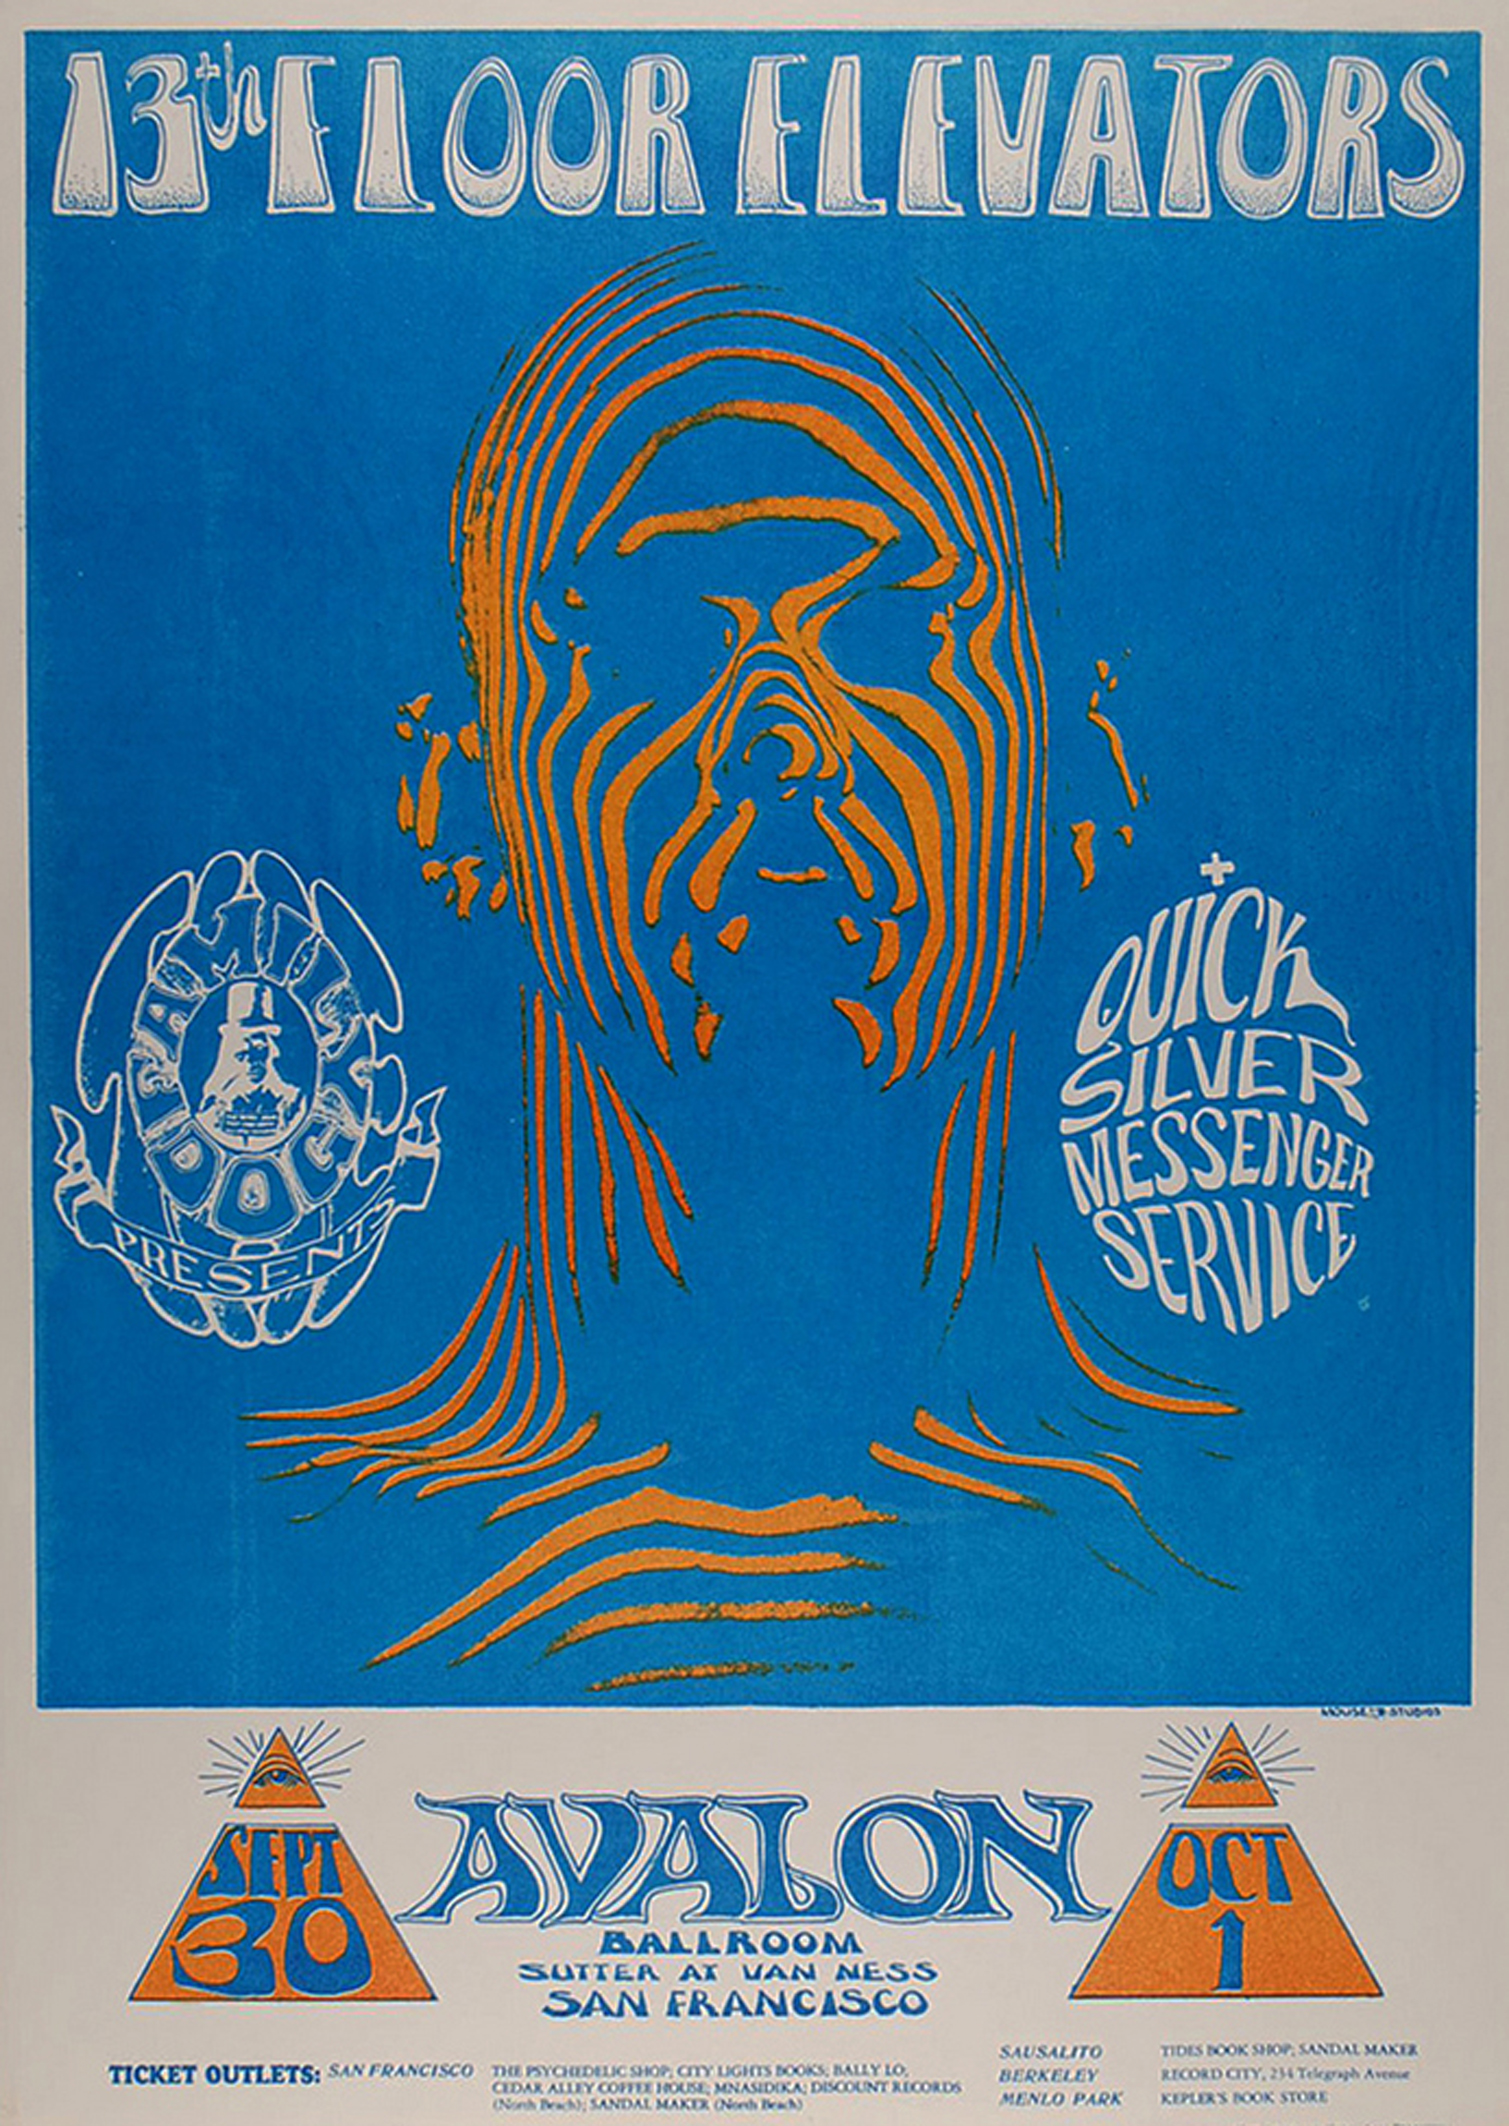 13th Floor Elevators 1966